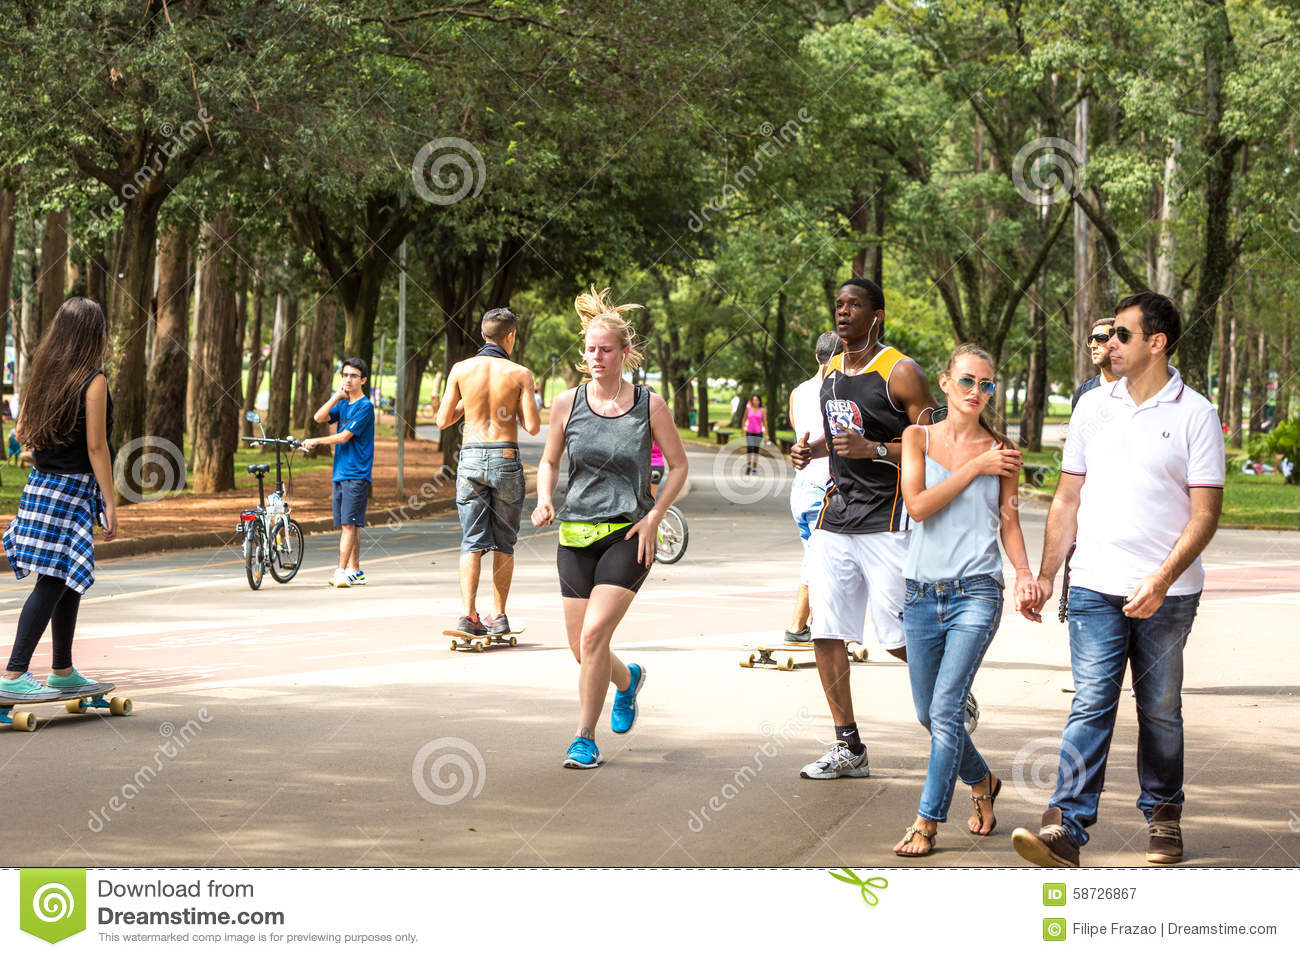 People Enjoy A Hot Day In Ibirapuera Park In Sao Paulo, Brazil.